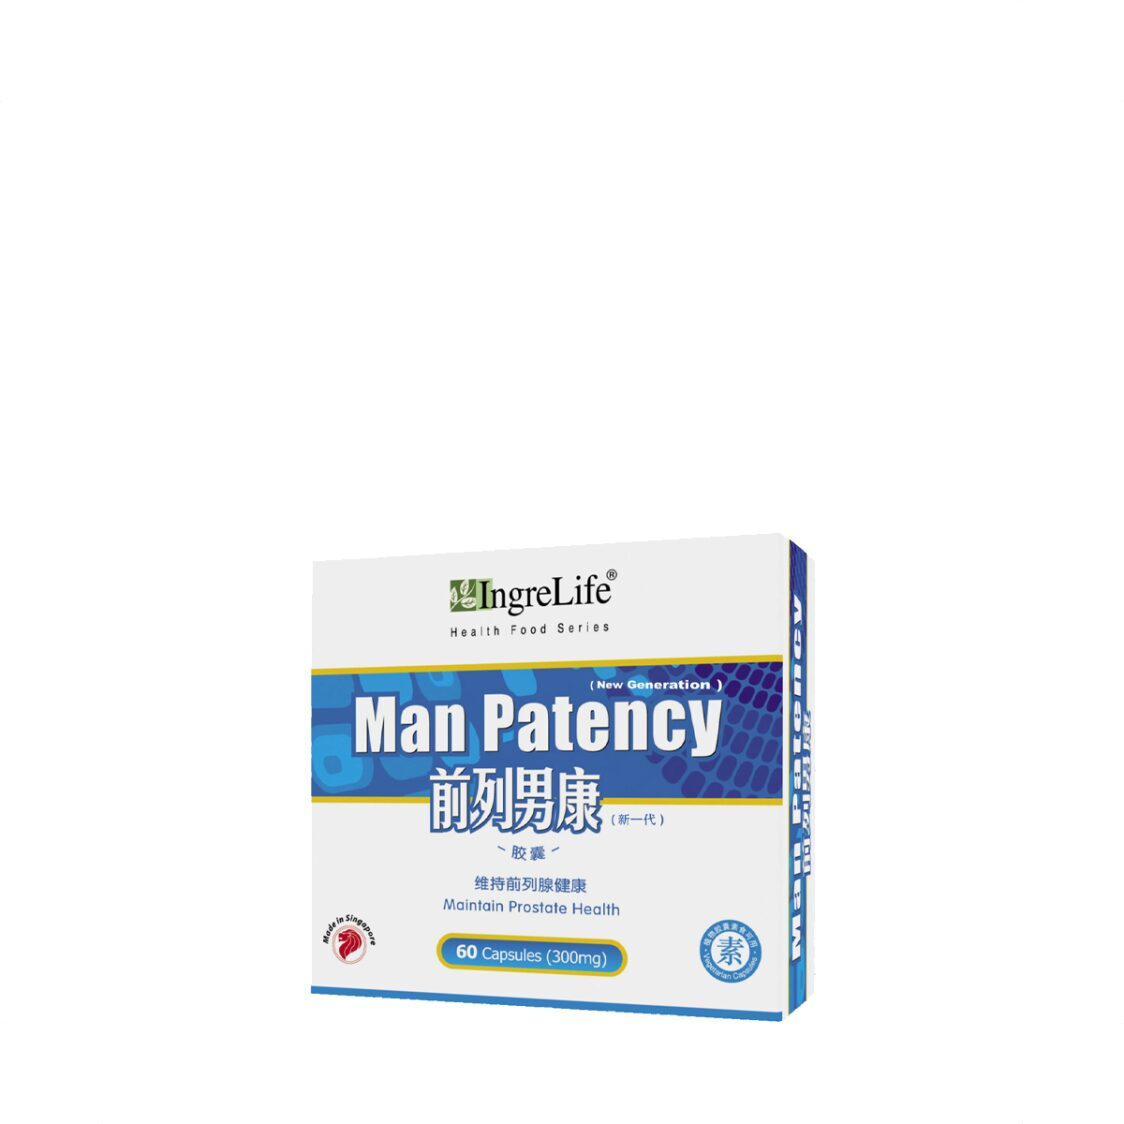 Man Patency 60 Capsules